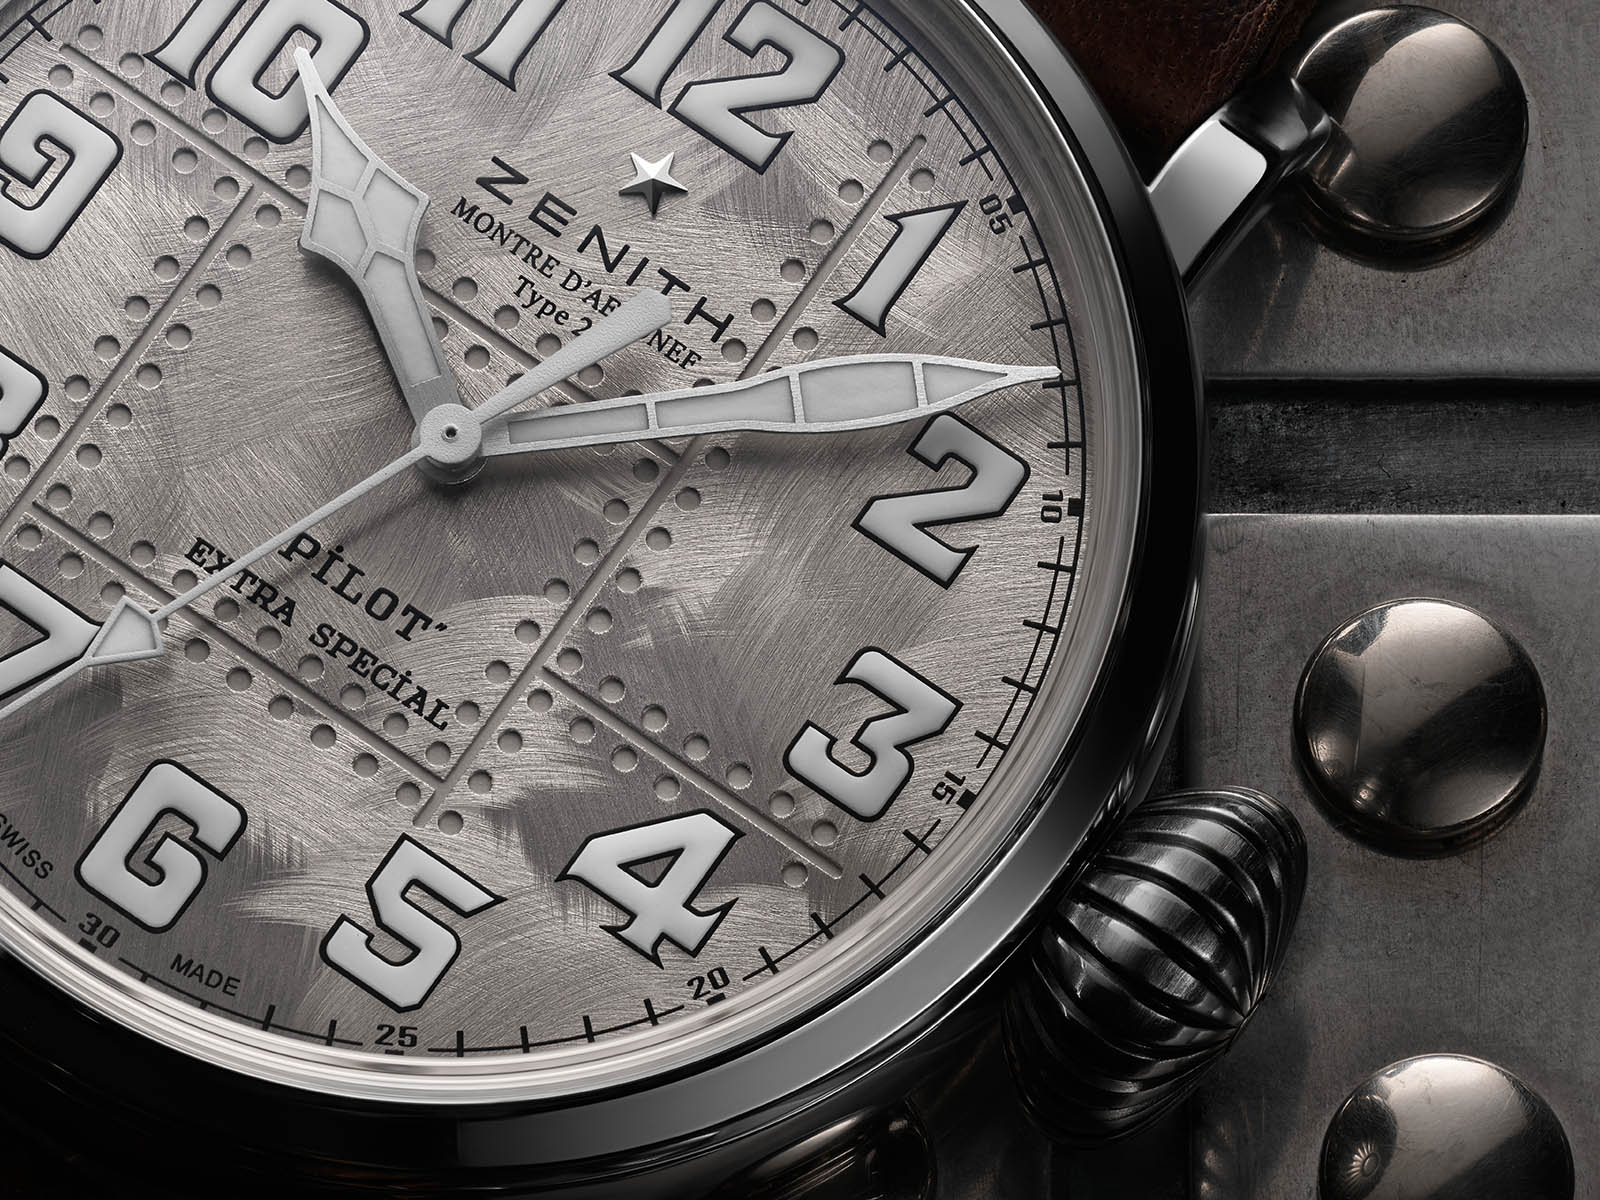 05-2430-679-17-c902-zenith-pilot-type-20-extra-special-silver-3.jpg